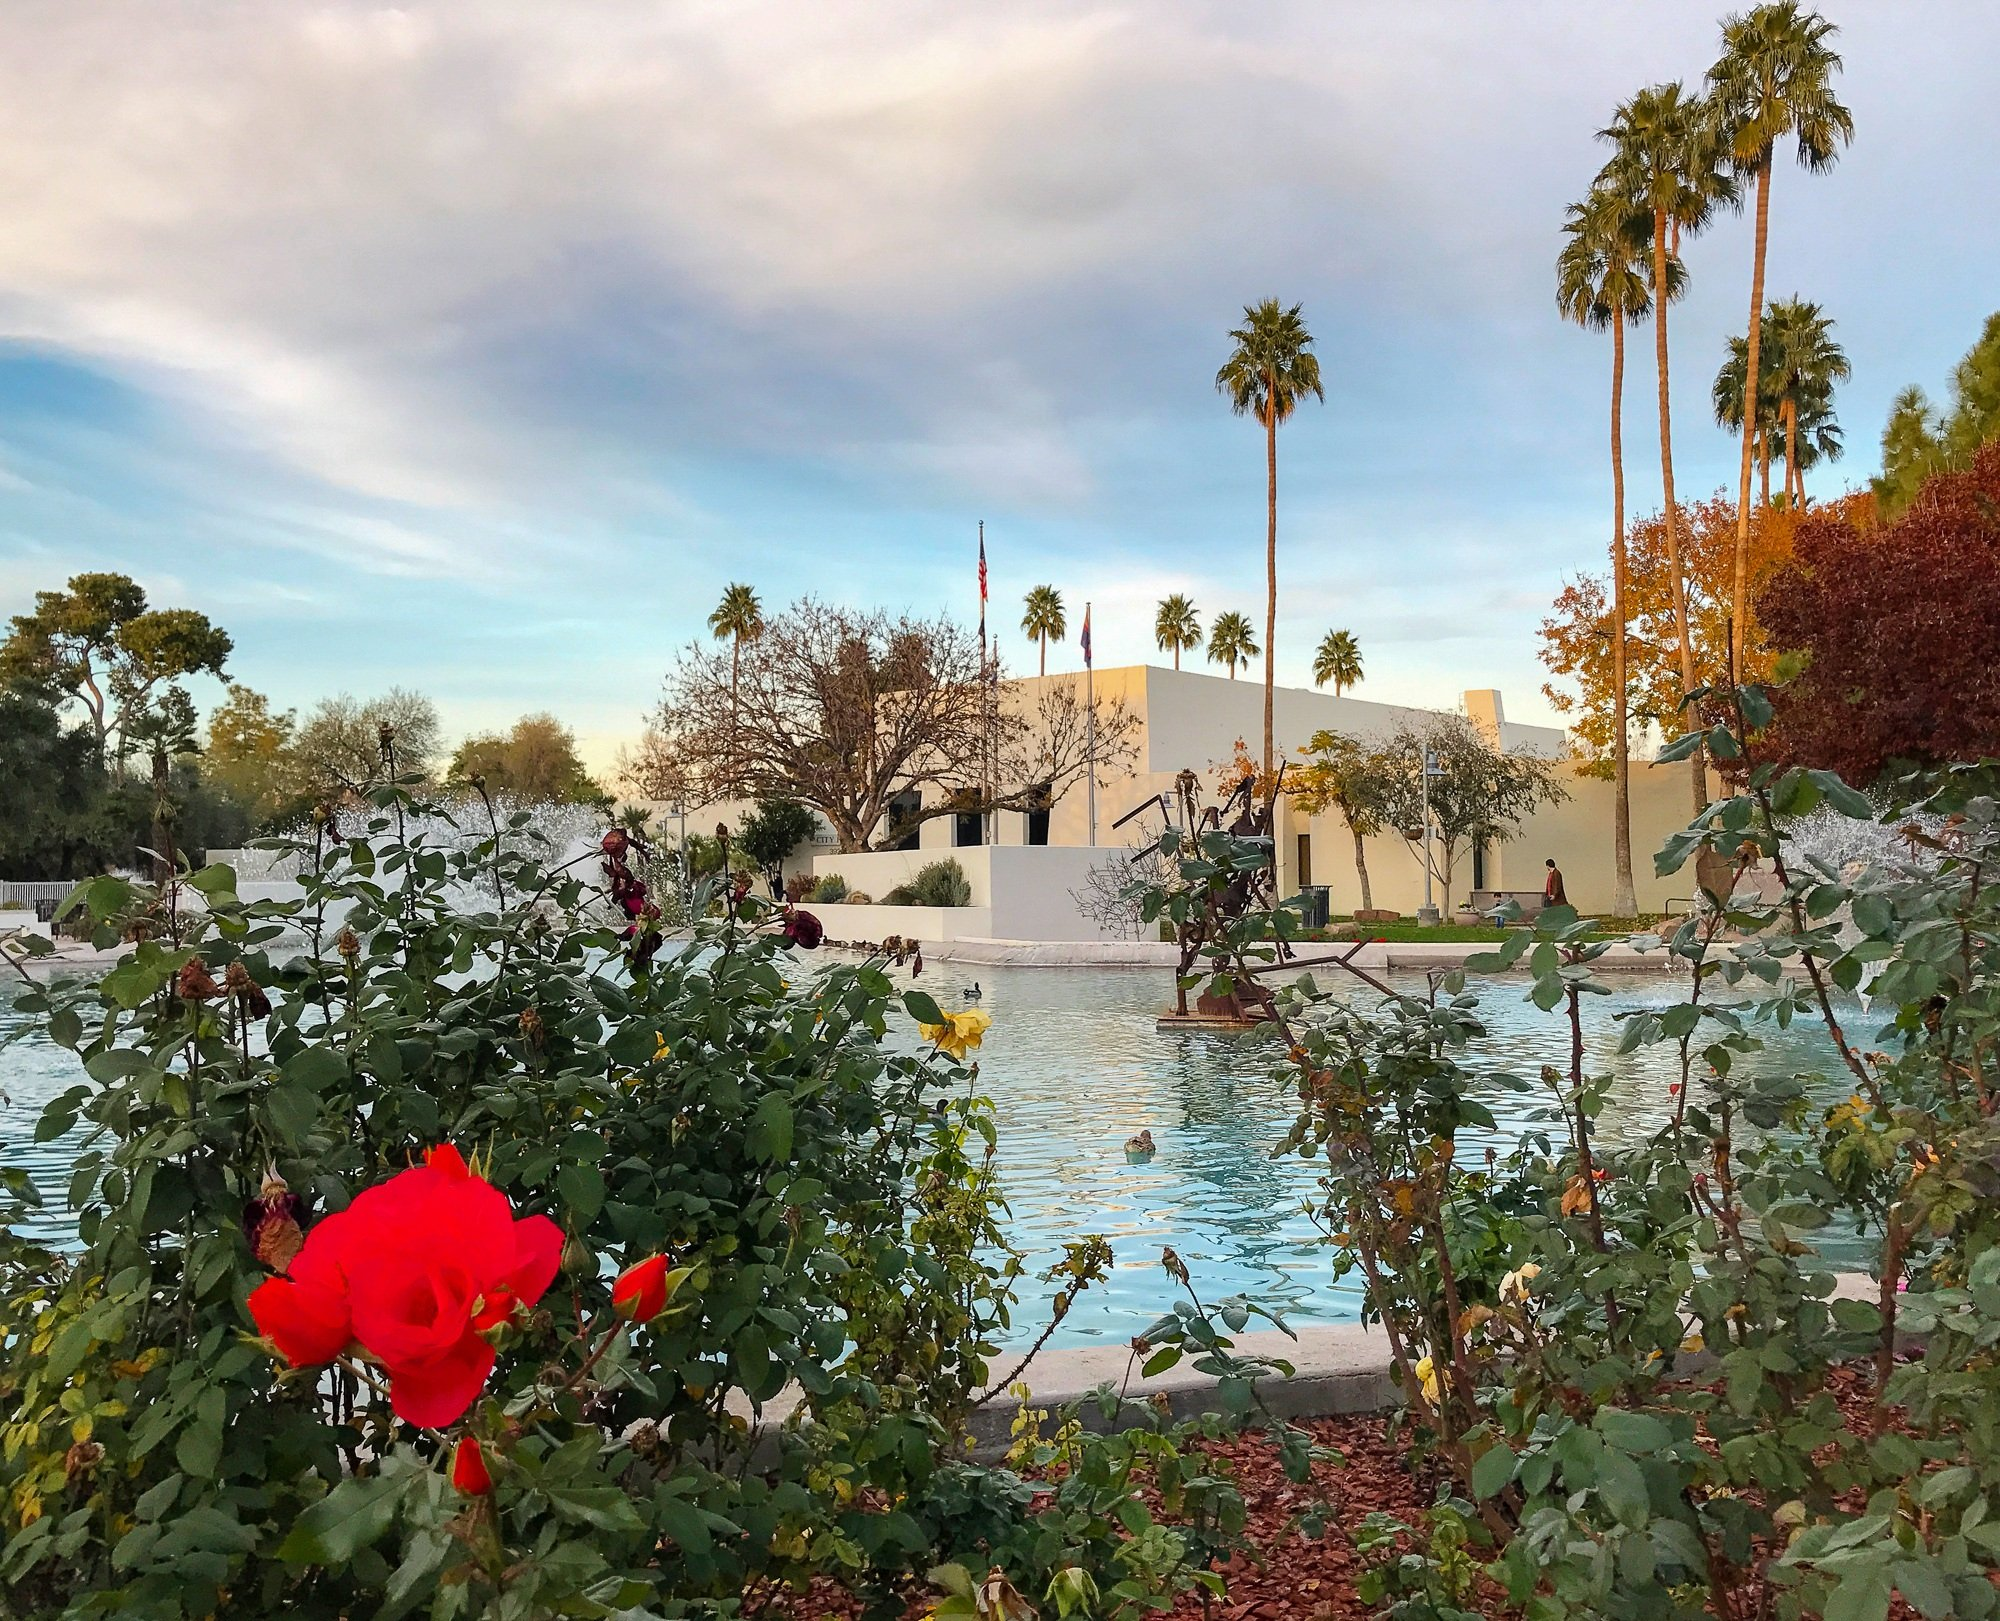 Scottsdale Civic Center Plaza fountain and flowers